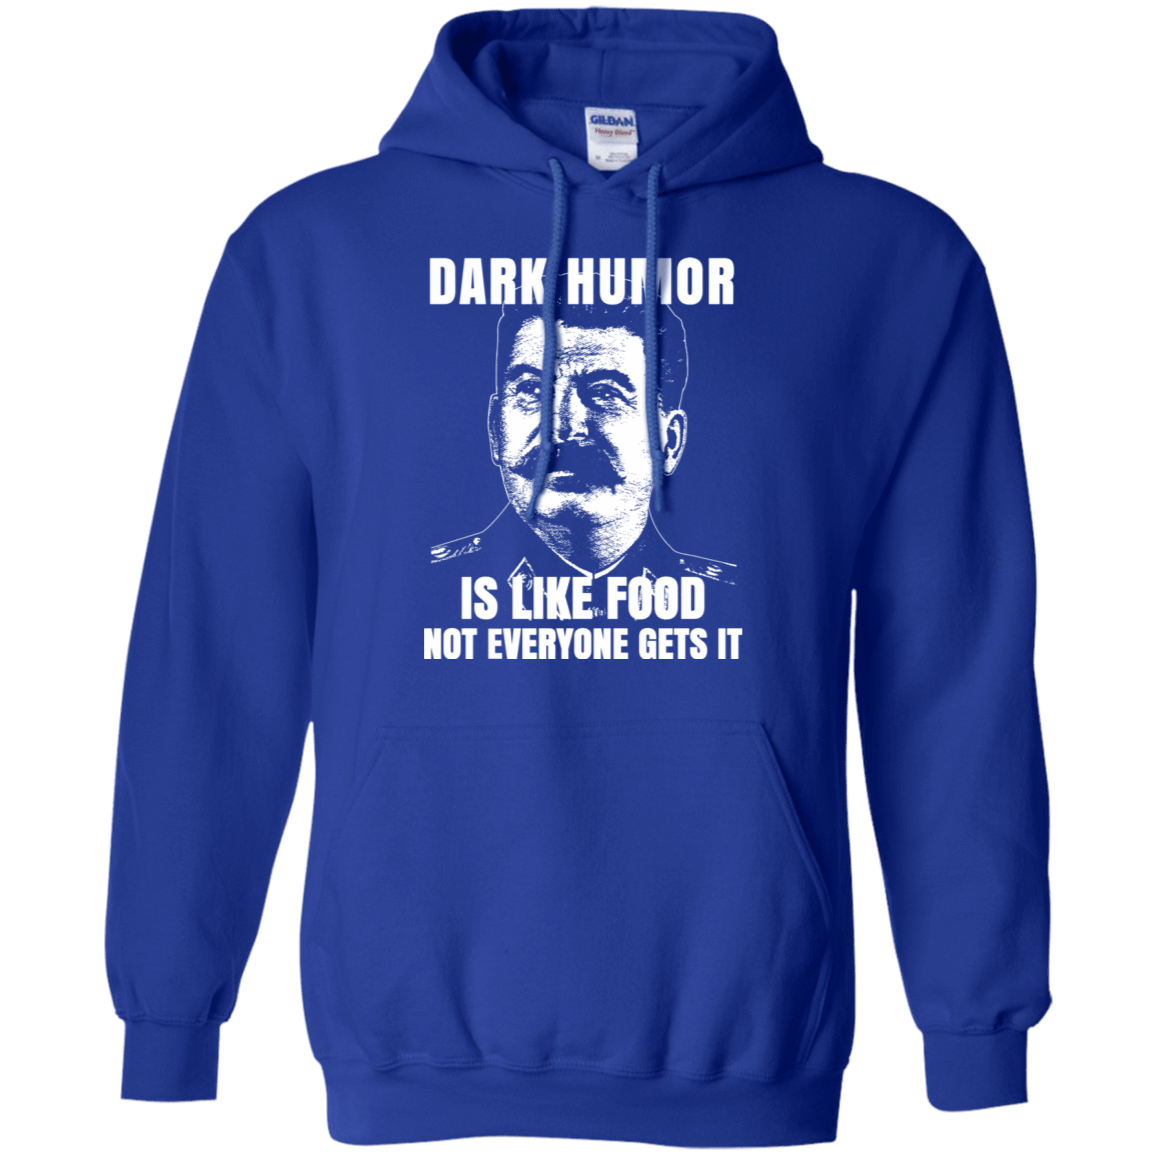 Dark Humor Is Like Food Not Everyone Gets It 541-4765-74209533-23175 - Tee Ript